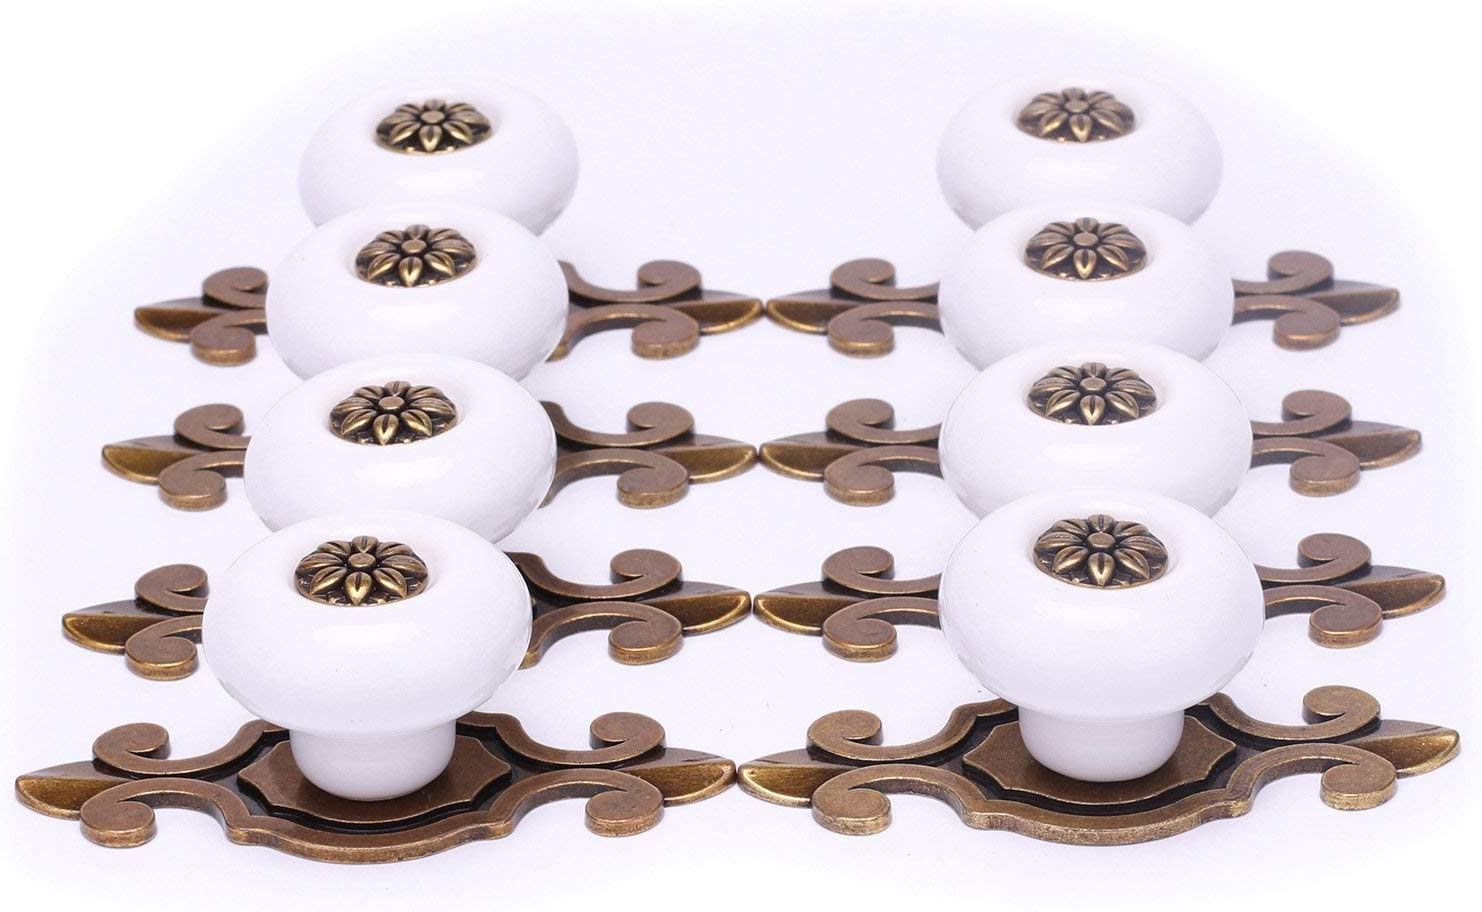 Backplates For Knobs On Kitchen Cabinets SunKni 8 Pack Ceramic Knobs and Pulls for Kitchen Cabinets